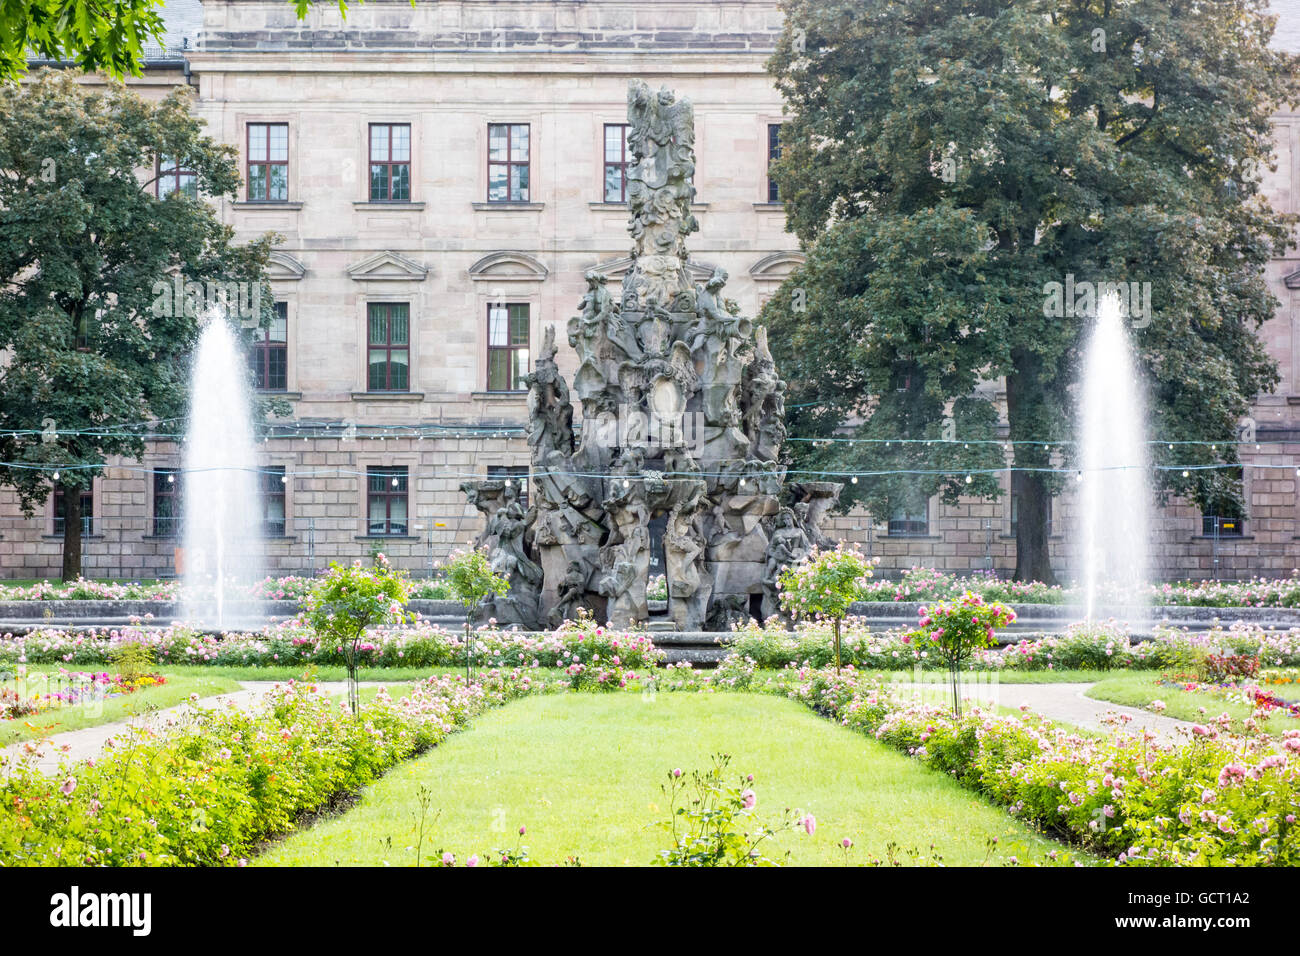 Botanischer Garten, Erlangen, Bavaria, Germany Stock Photo